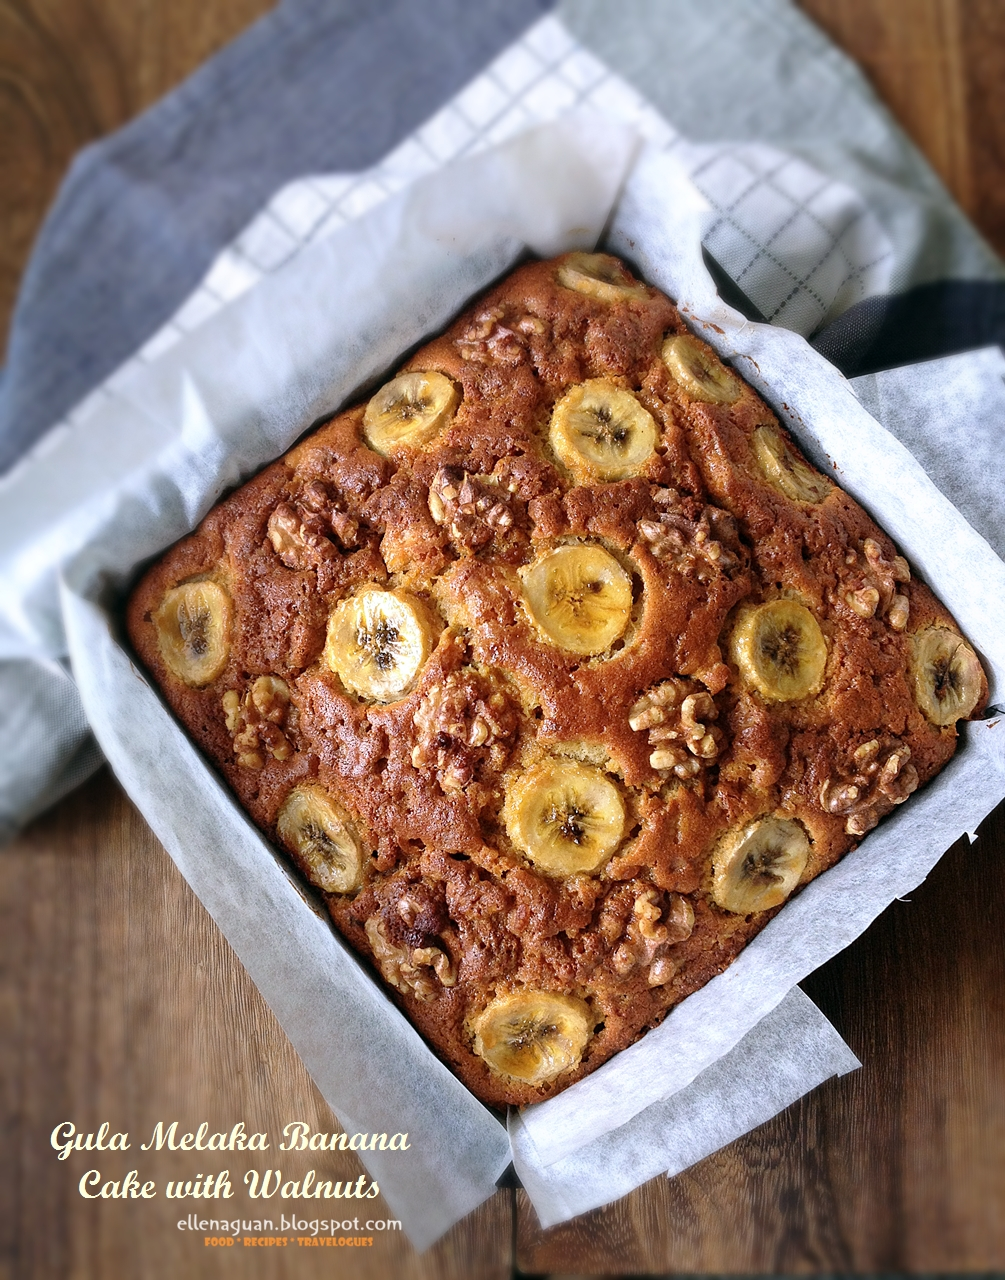 Cuisine paradise singapore food blog recipes reviews and recipe gula melaka banana cake with walnuts forumfinder Choice Image